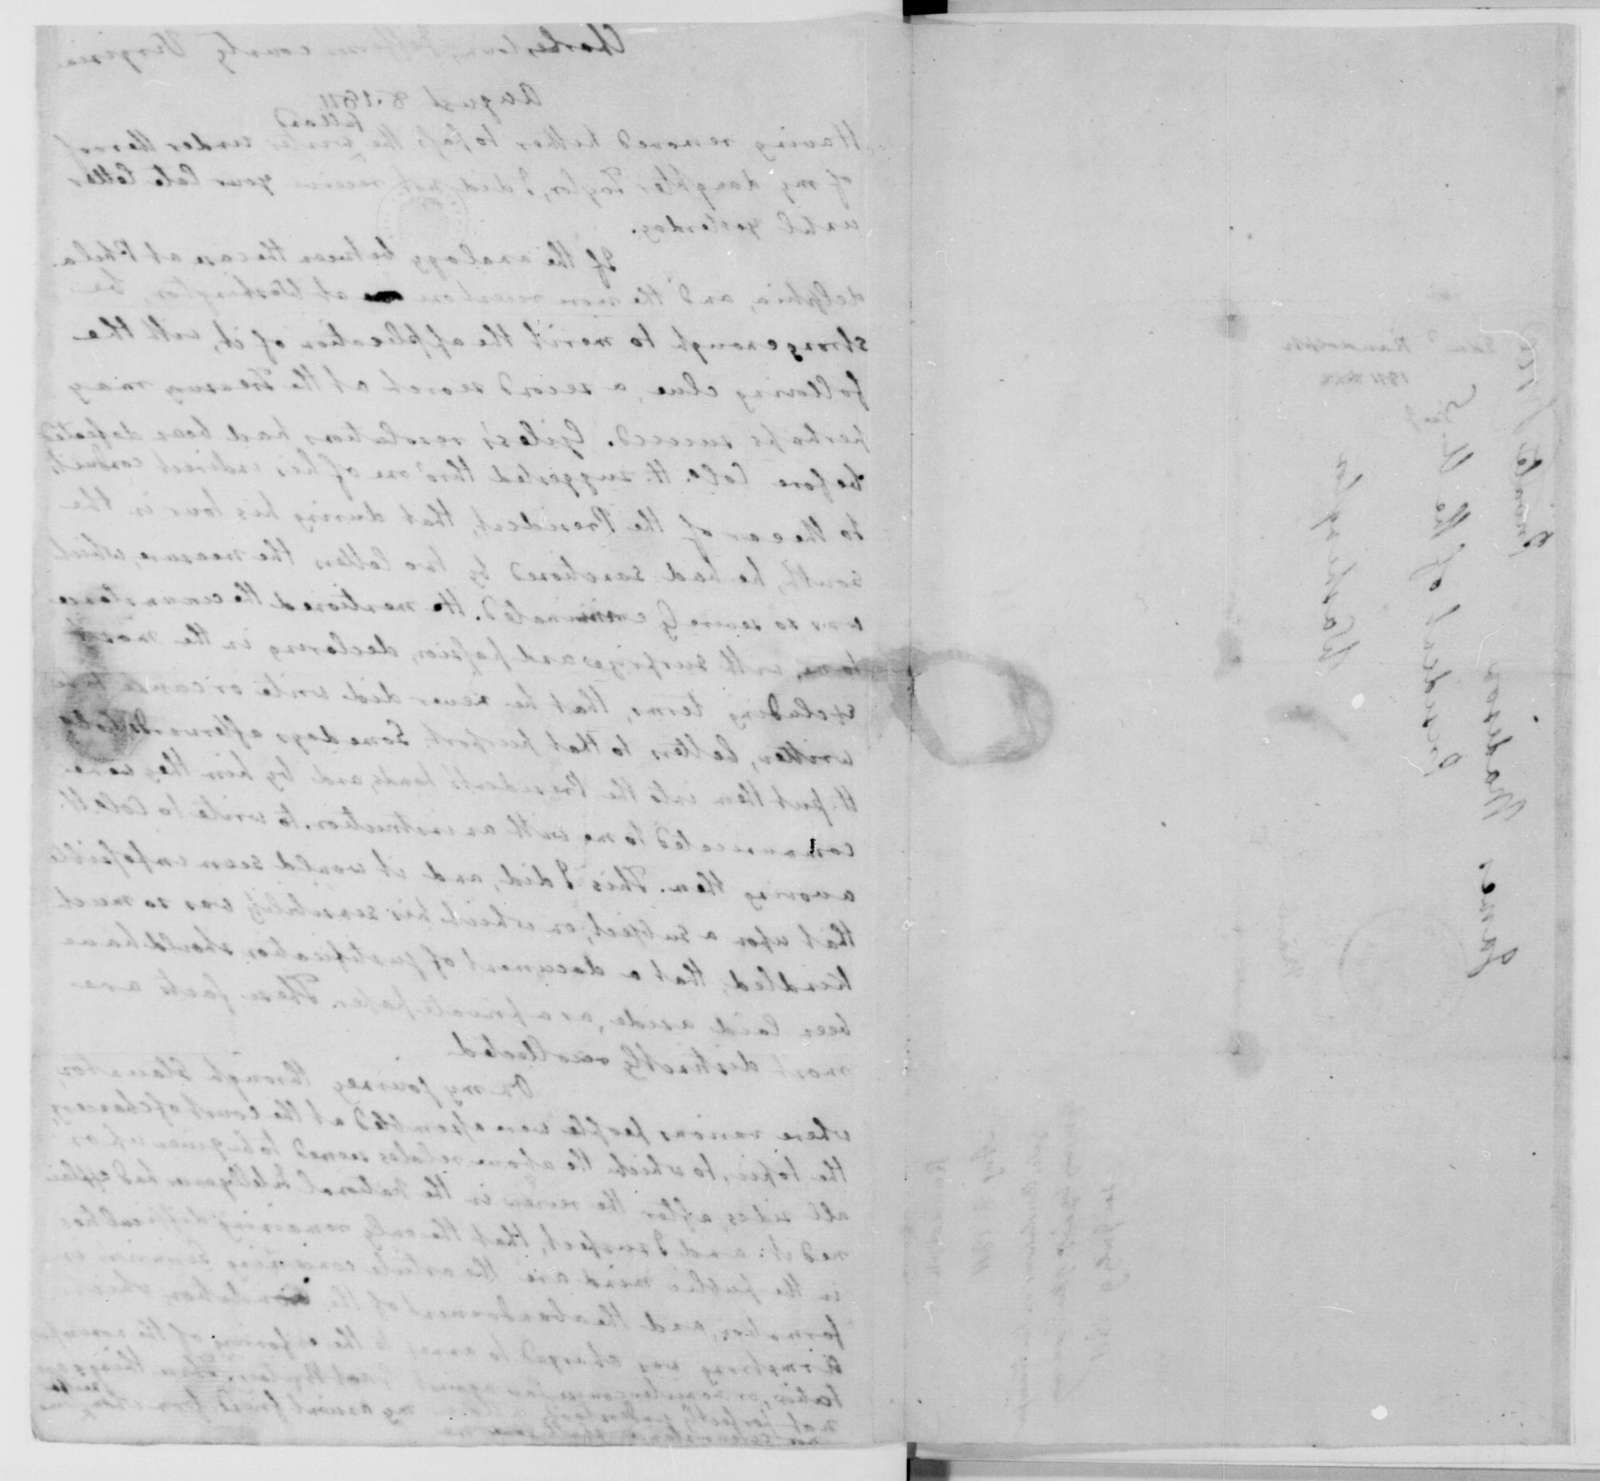 Edmund Randolph to James Madison, August 8, 1811. With a note by James Madison.